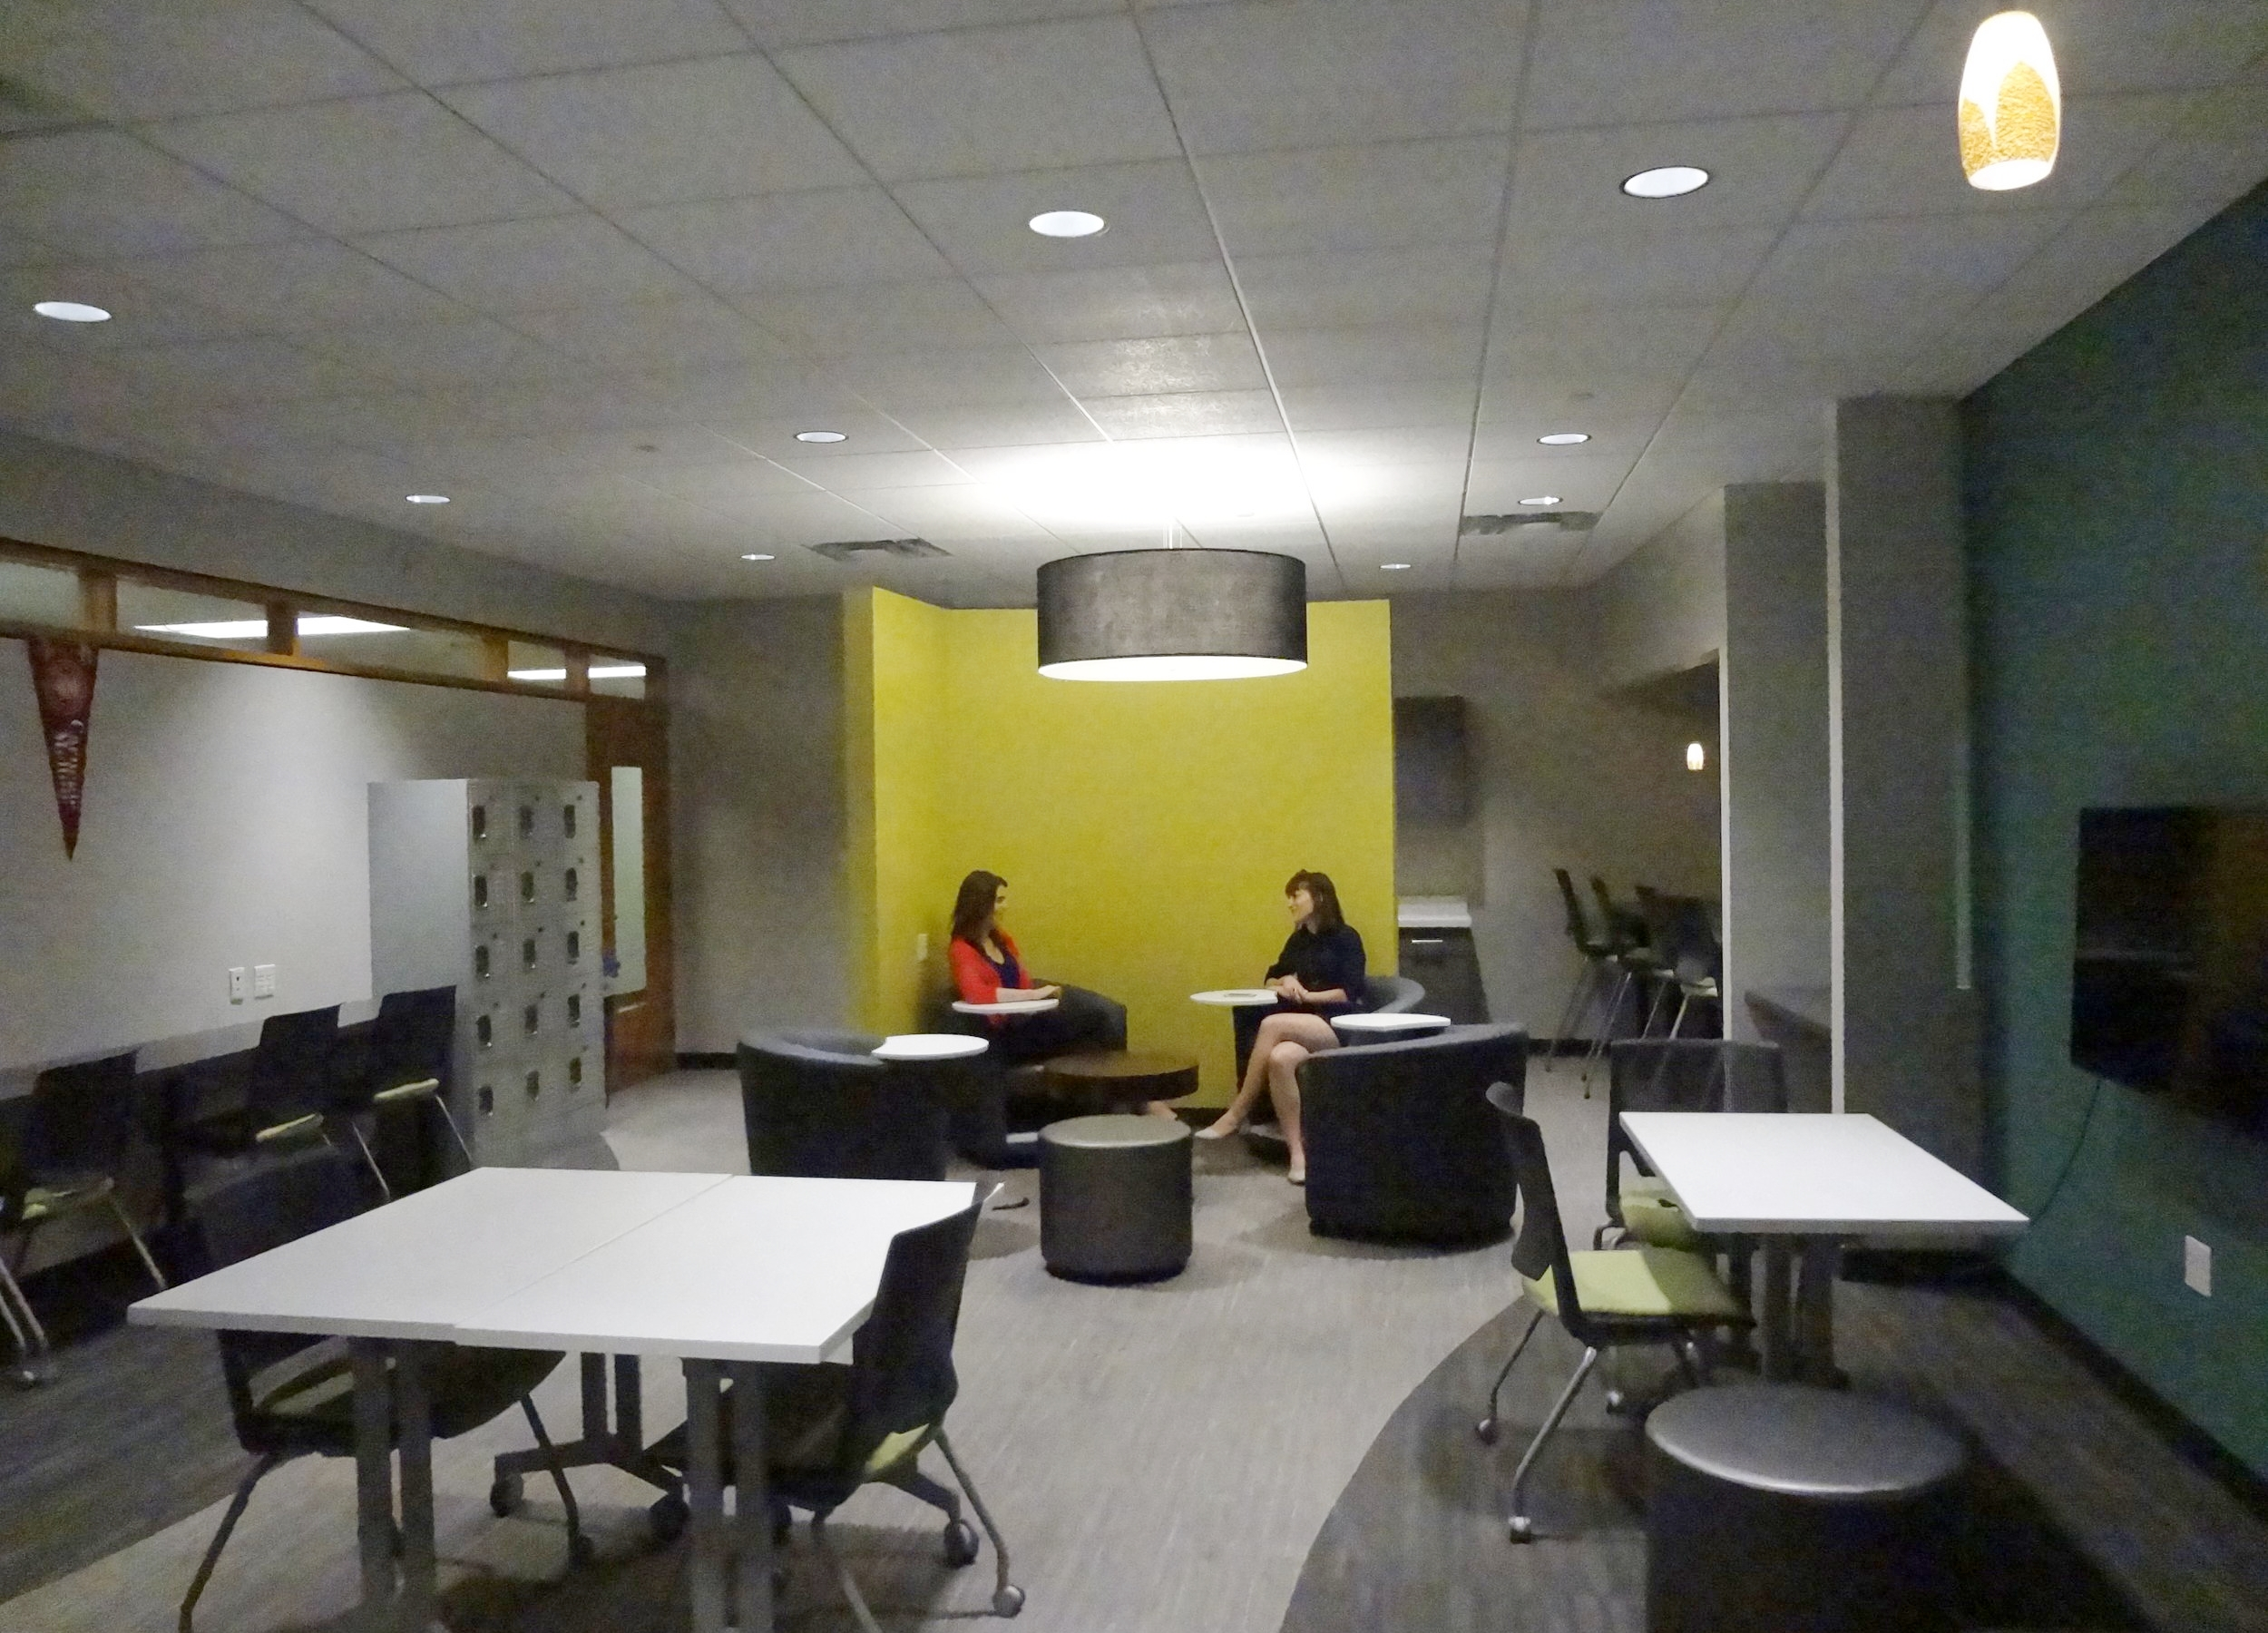 CMU WEAN HALL INTERIOR RENOVATION